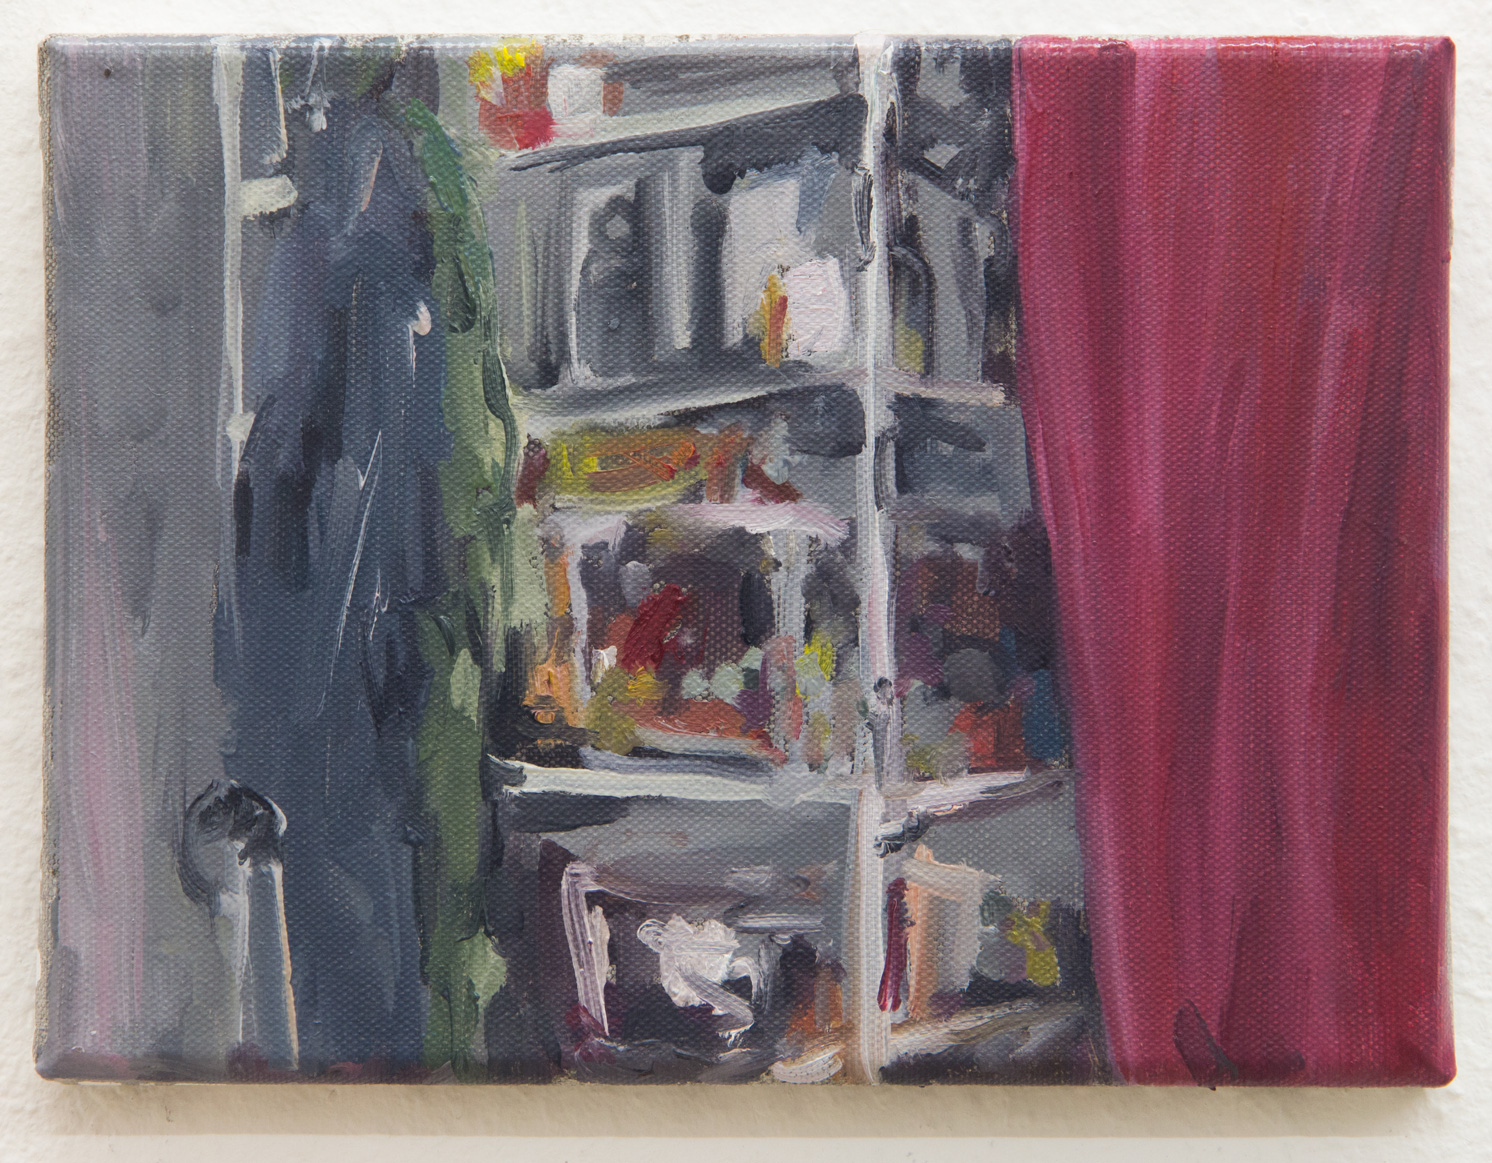 From the Series: My Little Chaos; 24 x 18 cm; oil on canvas; 2017